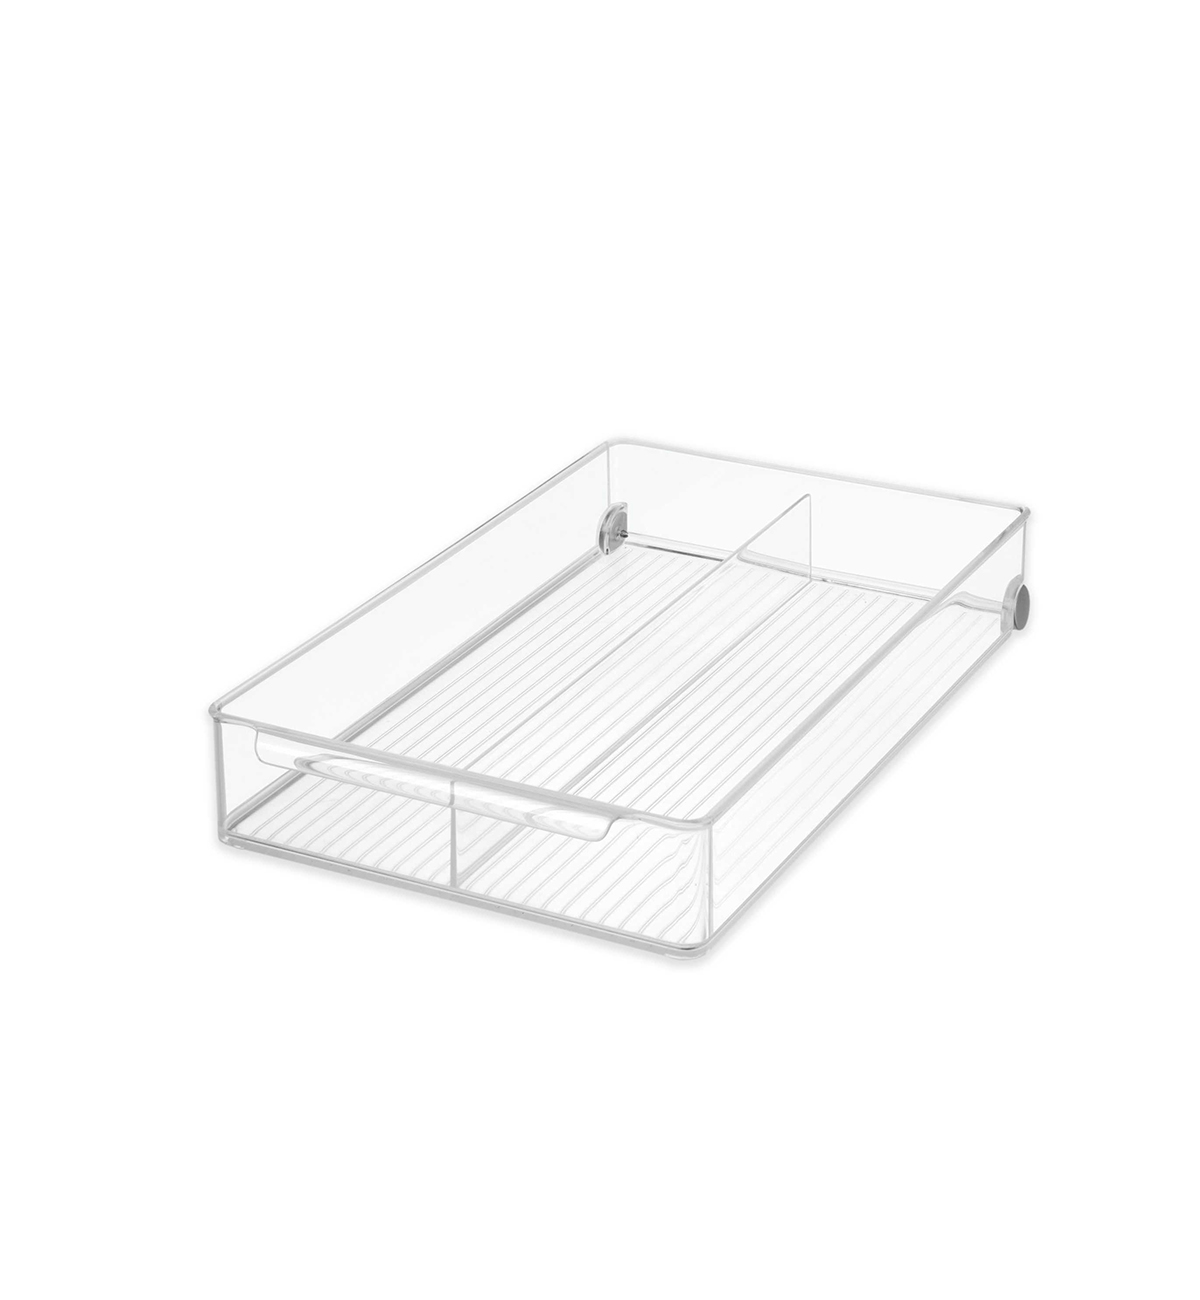 Clear Underbed Storage Bin